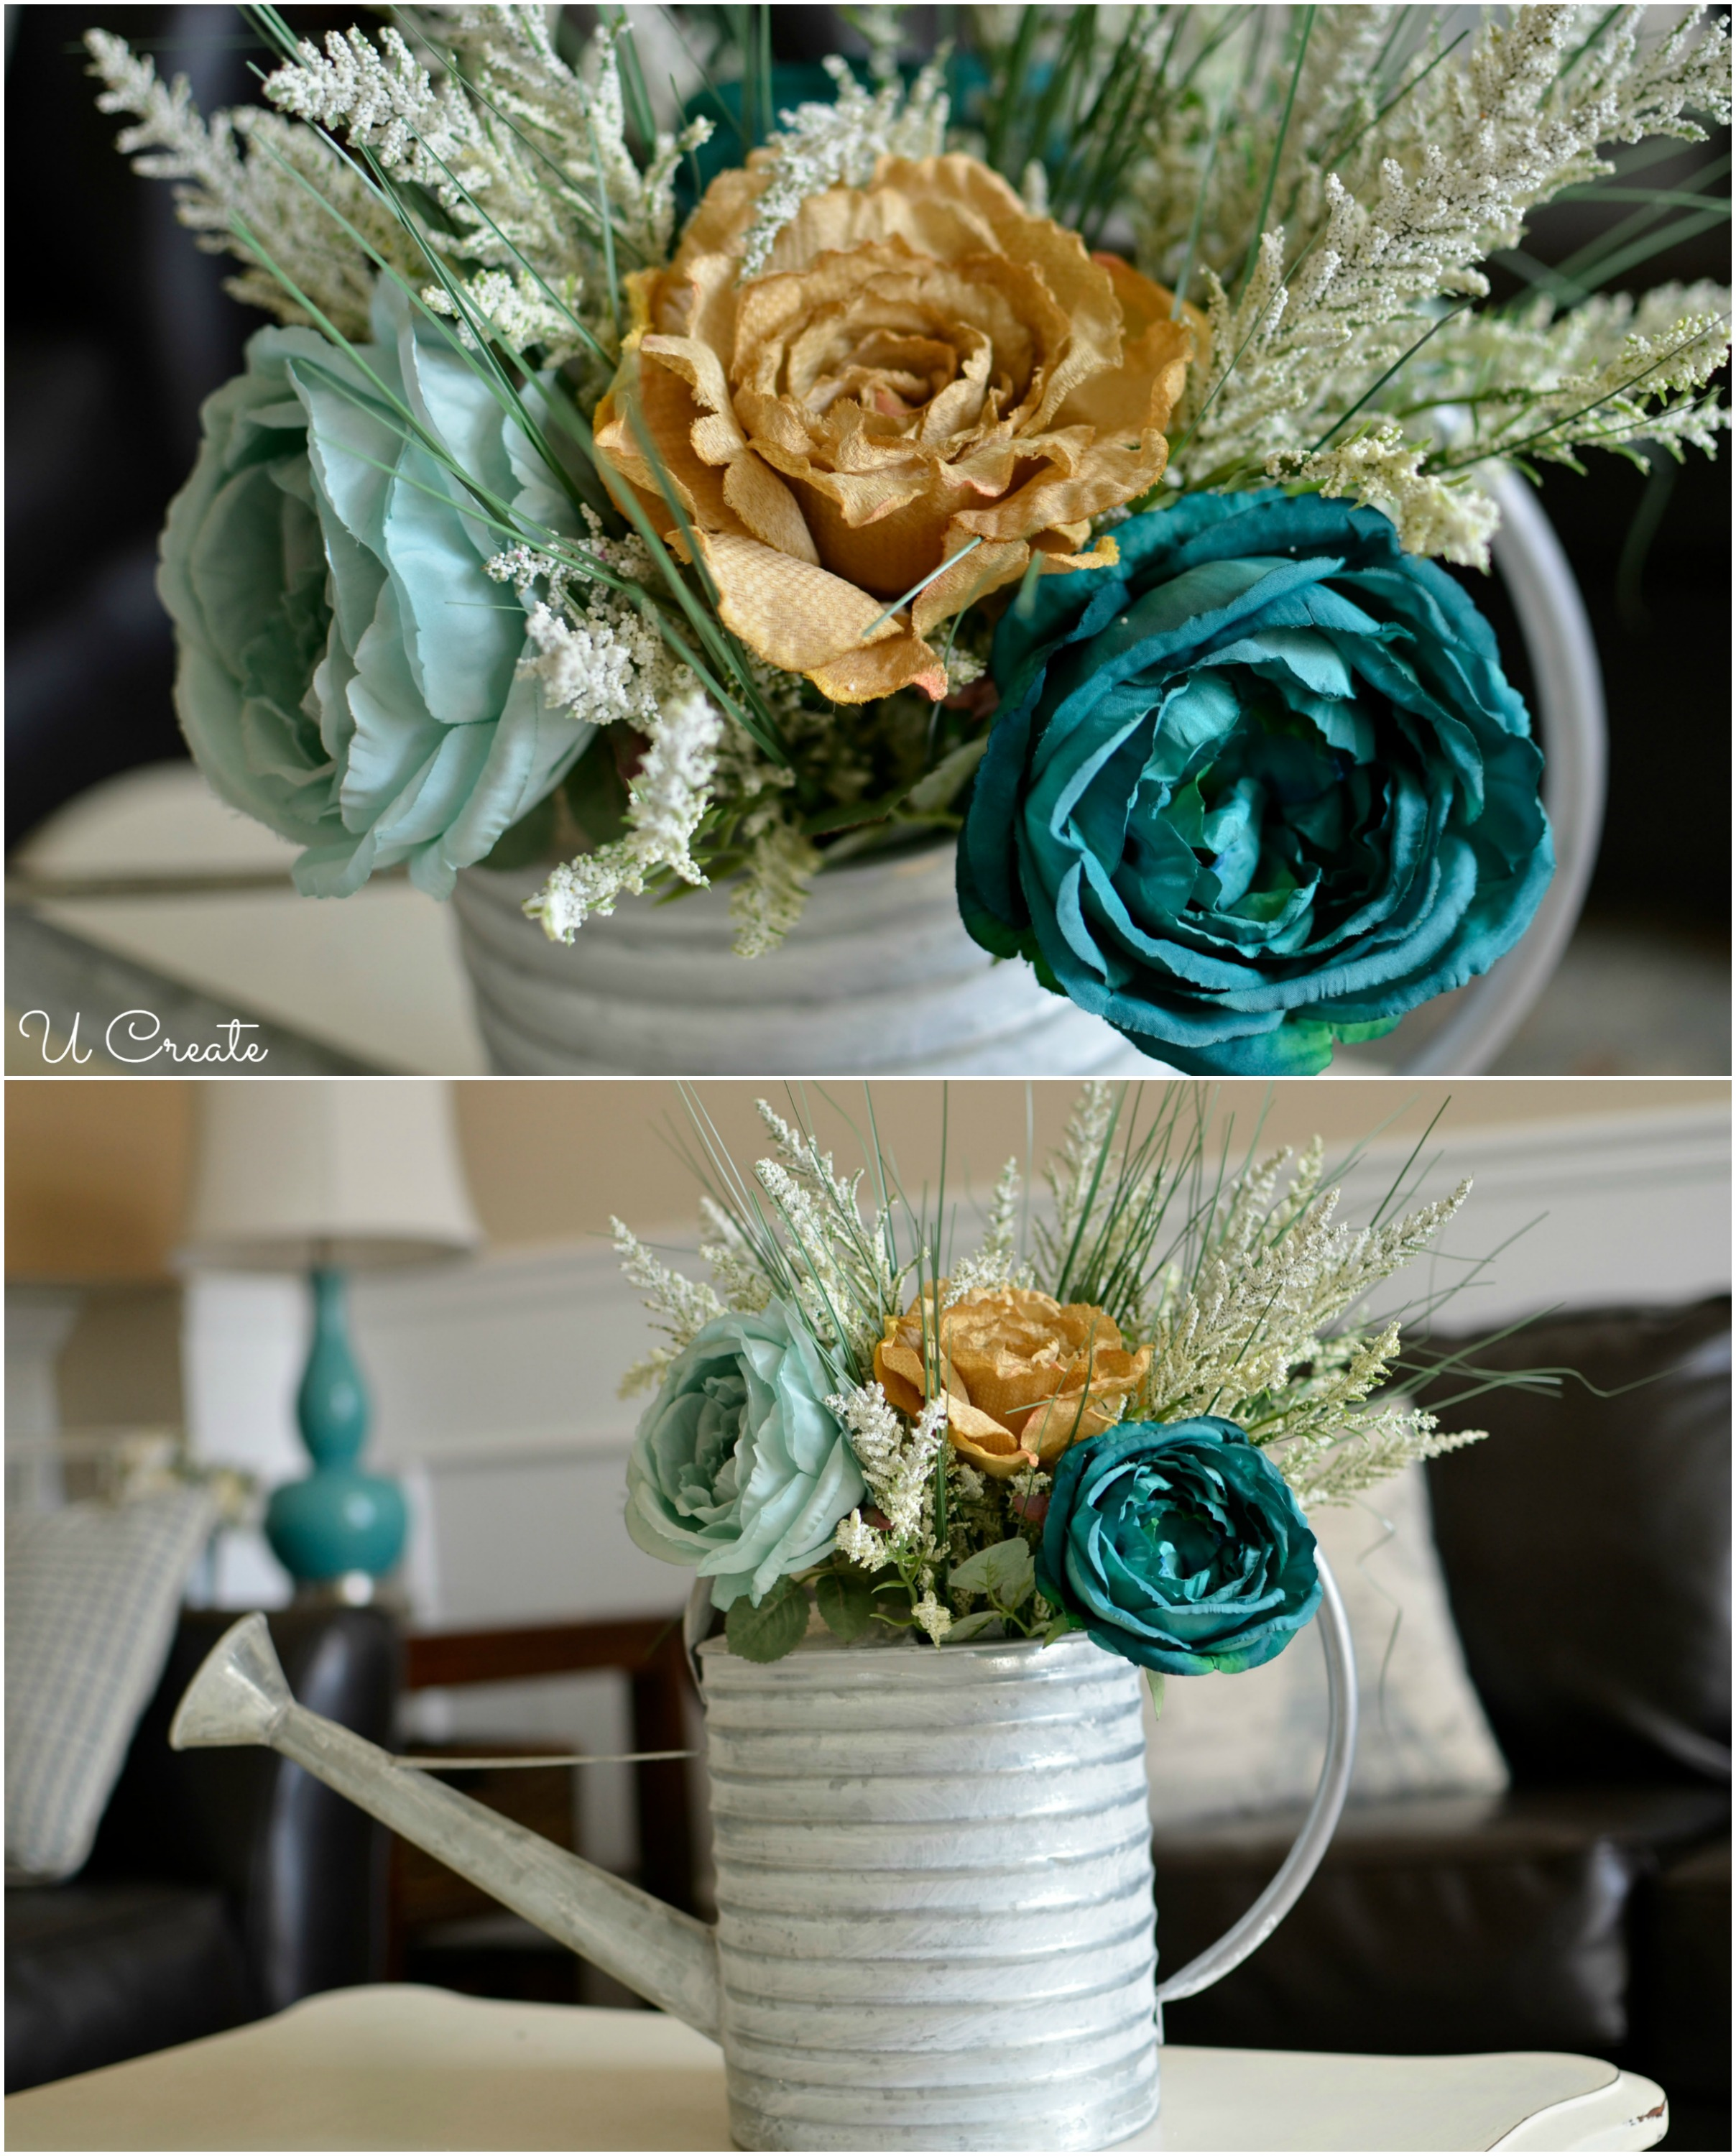 Spring Rose Floral Arrangement by U Create